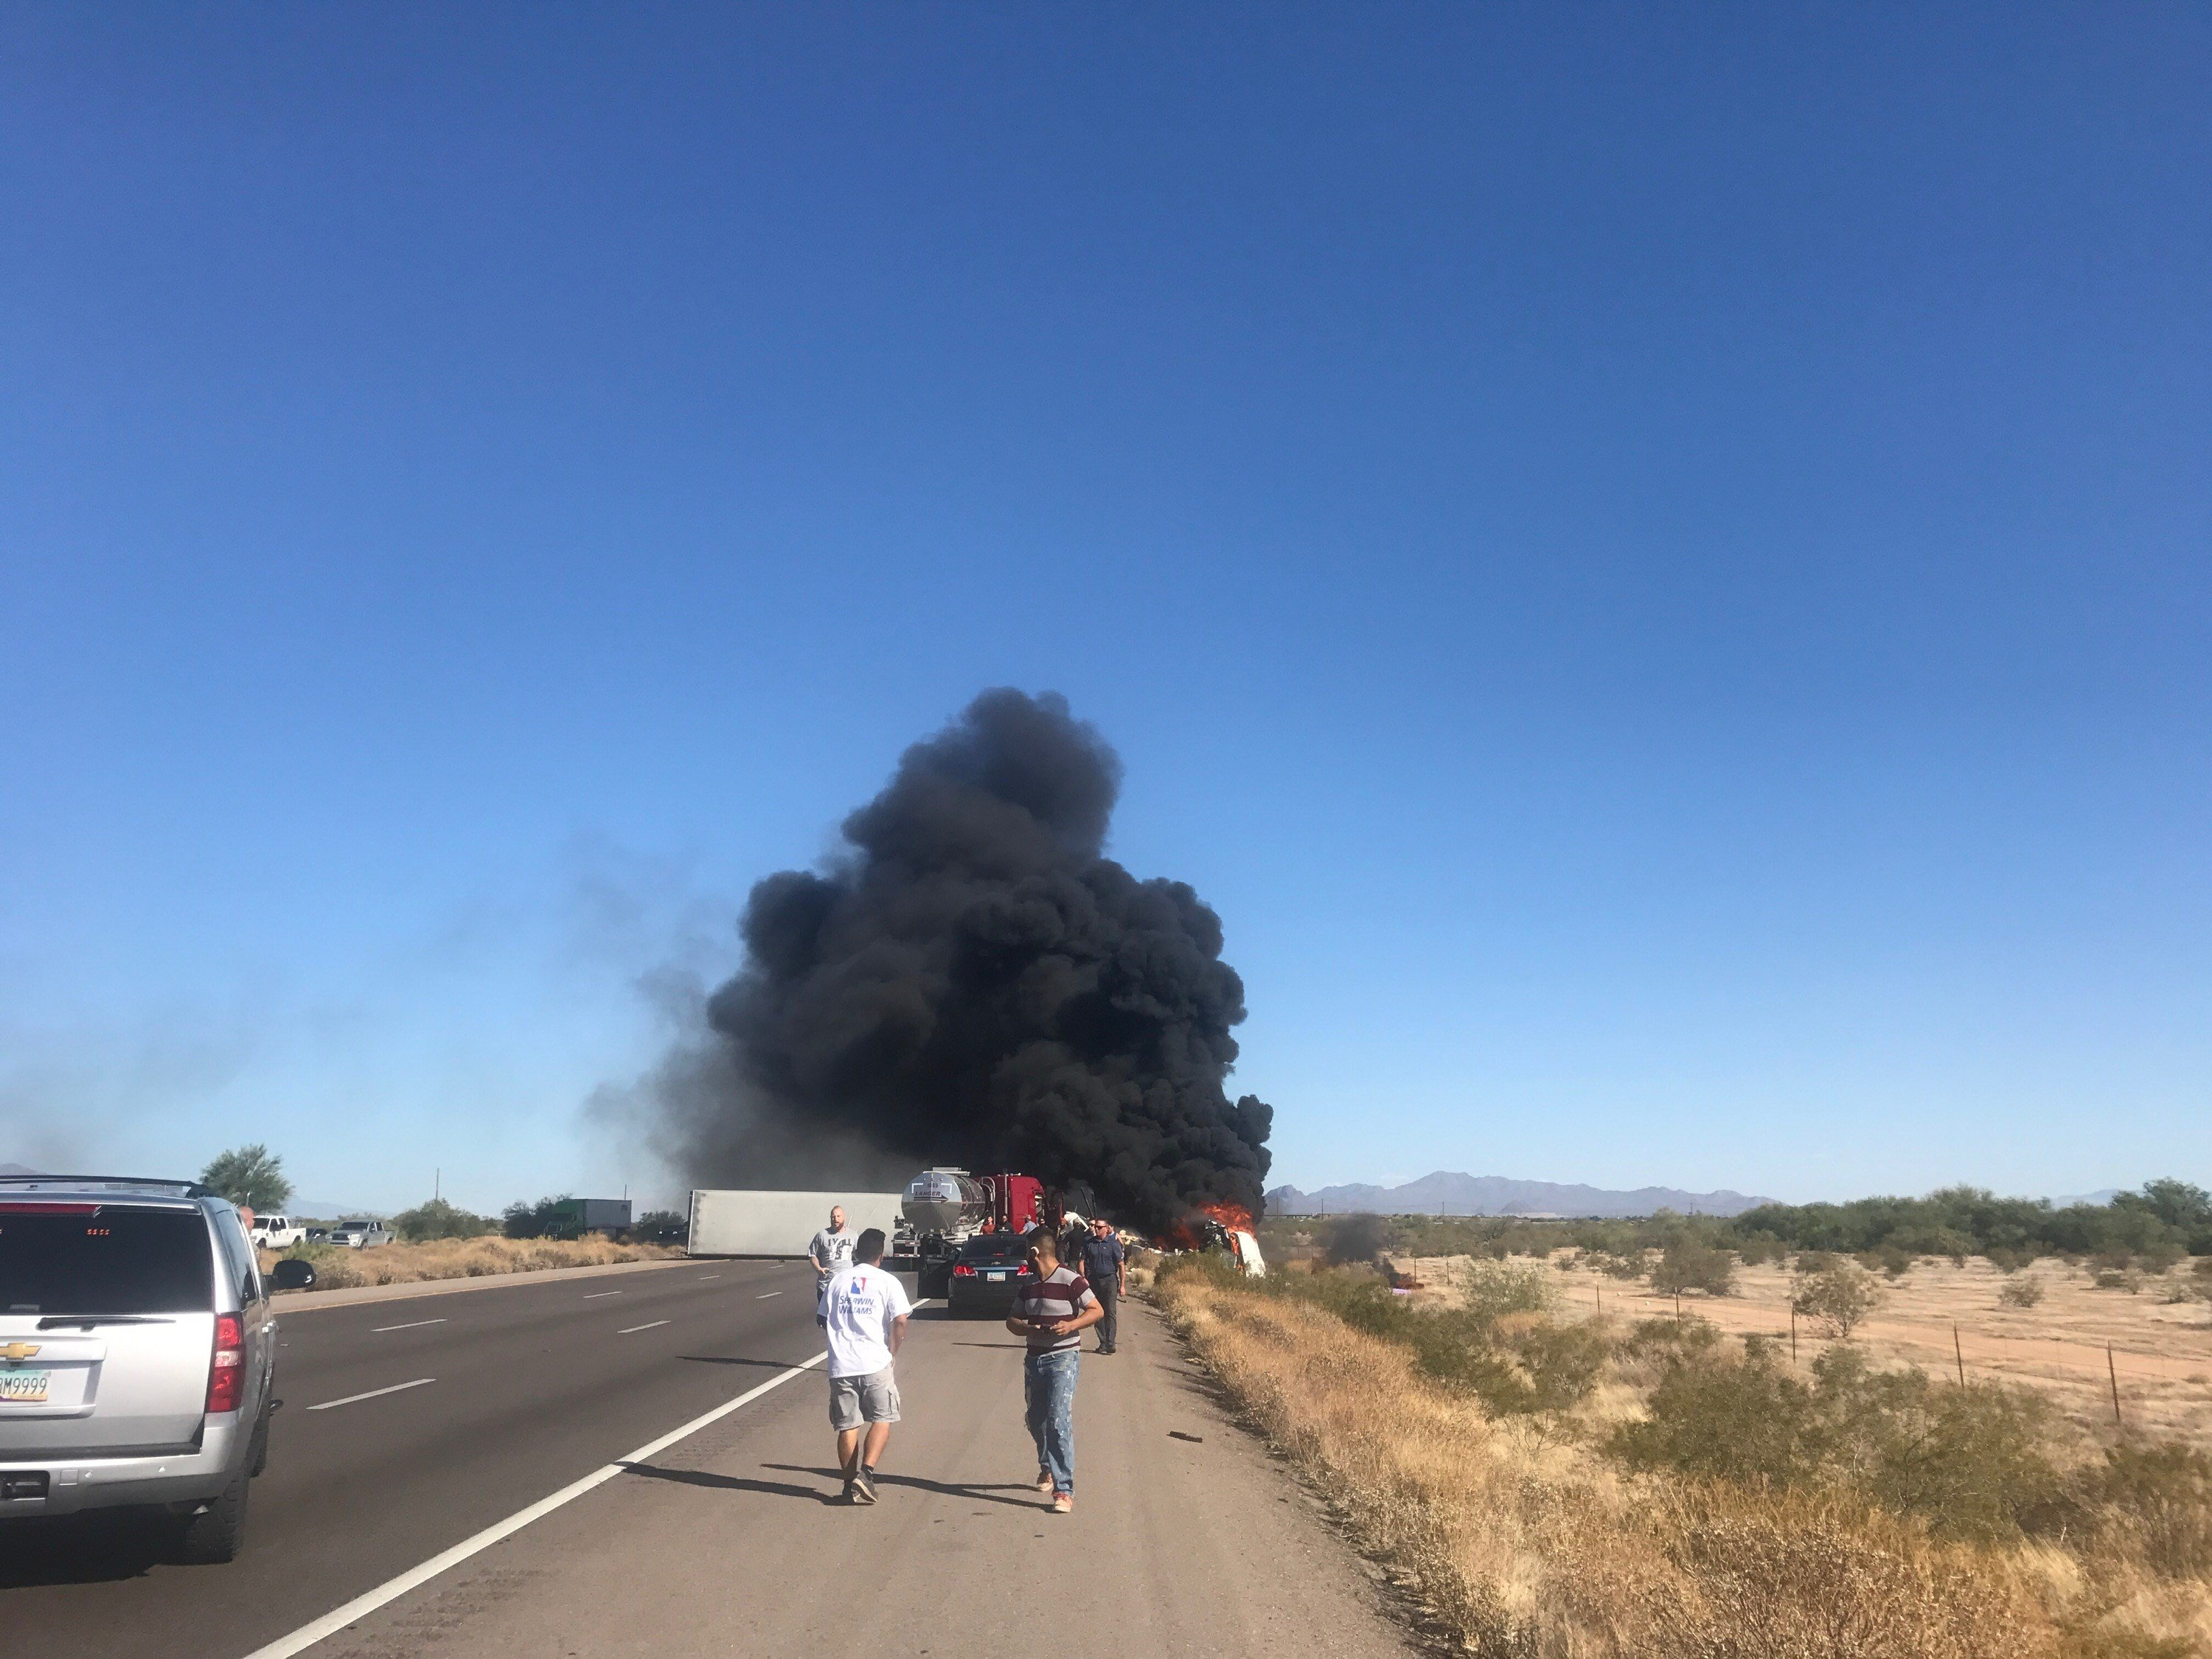 A semi-truck crash closed Interstate 10 north of Tucson Monday evening. (22 May 2017) [Source: KOLD]